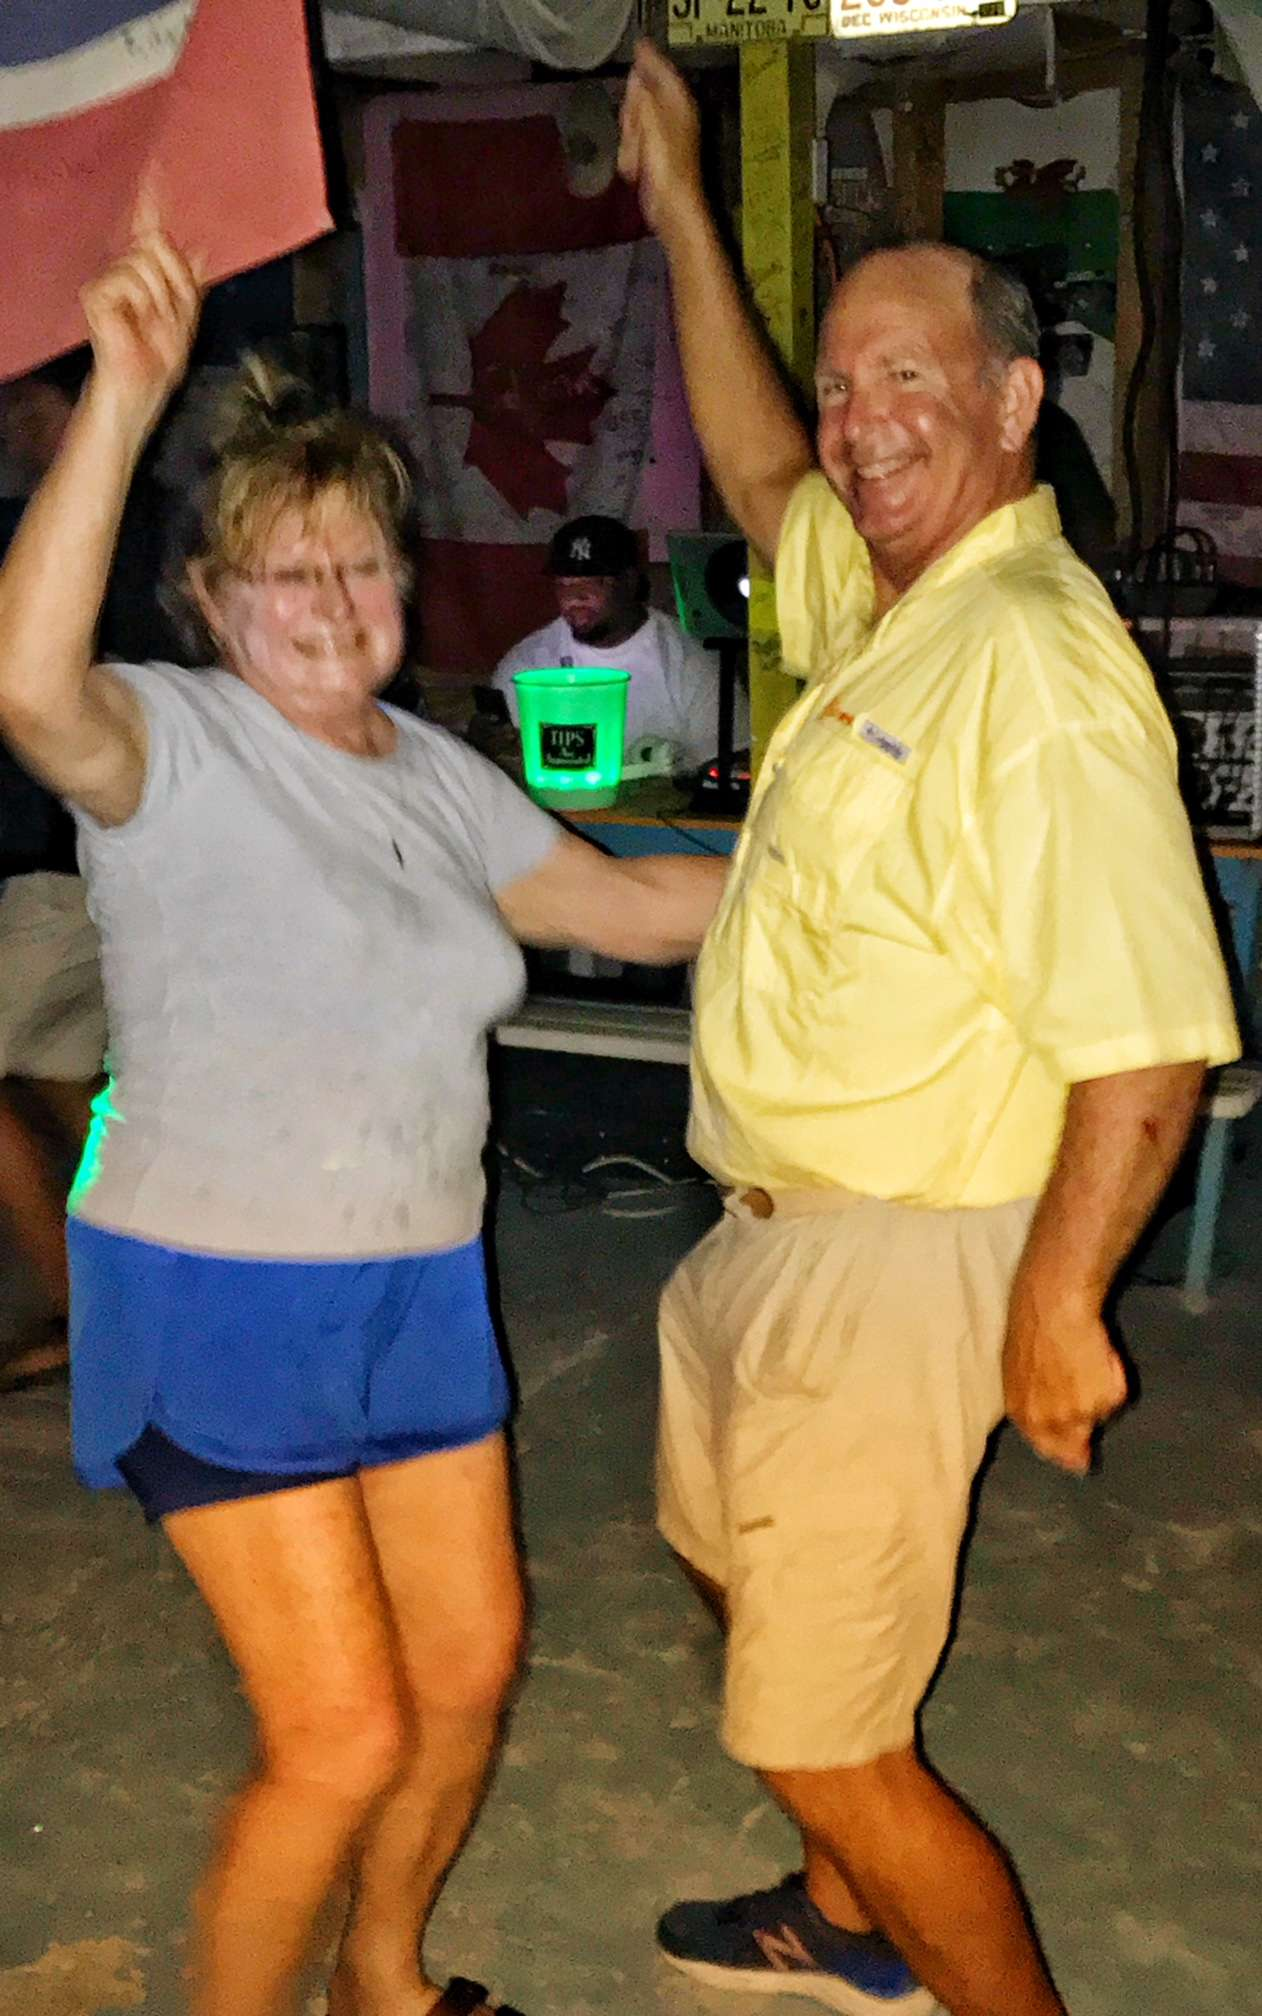 Sam and one of our fun guests showing off their moves!